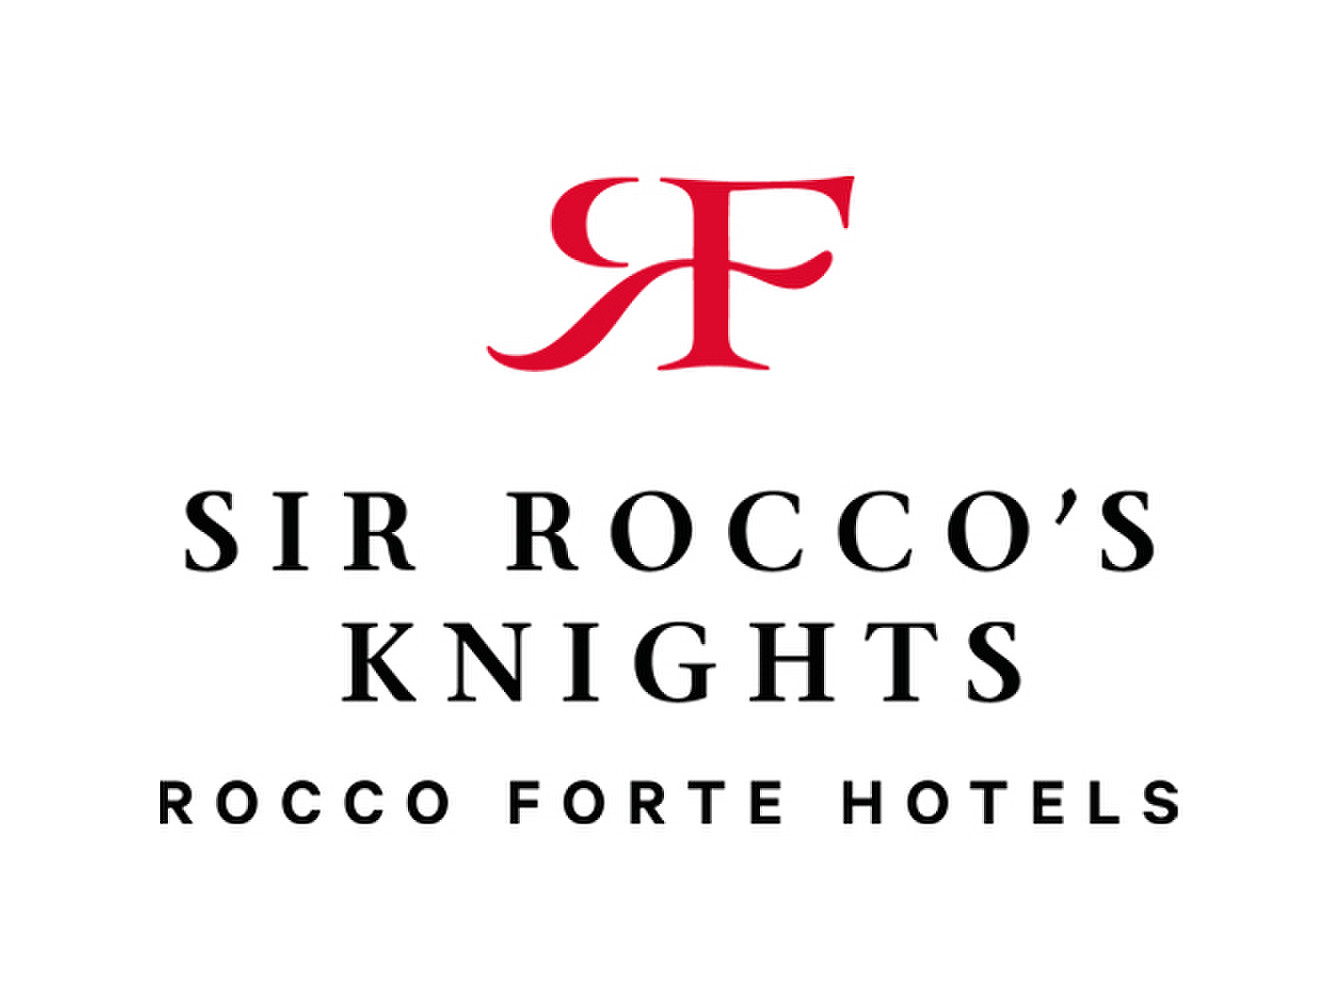 Rocco\'s Knights